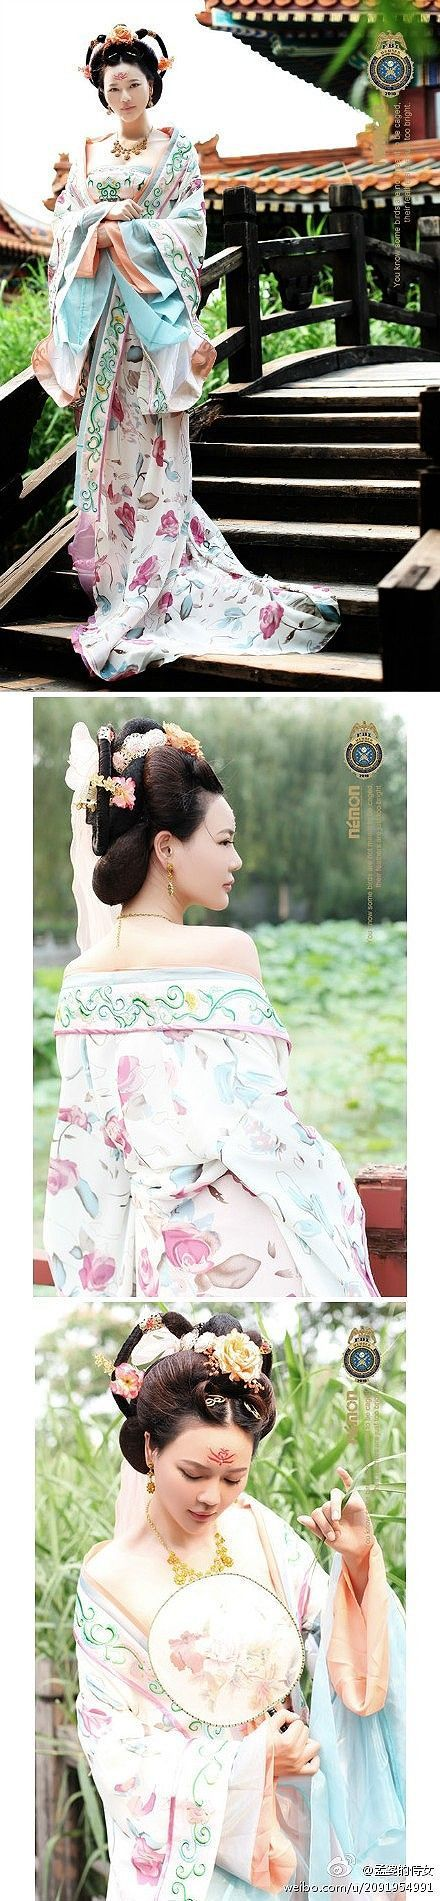 Hanfu: traditional Chinese costume.                                                                                                                                                                                 もっと見る